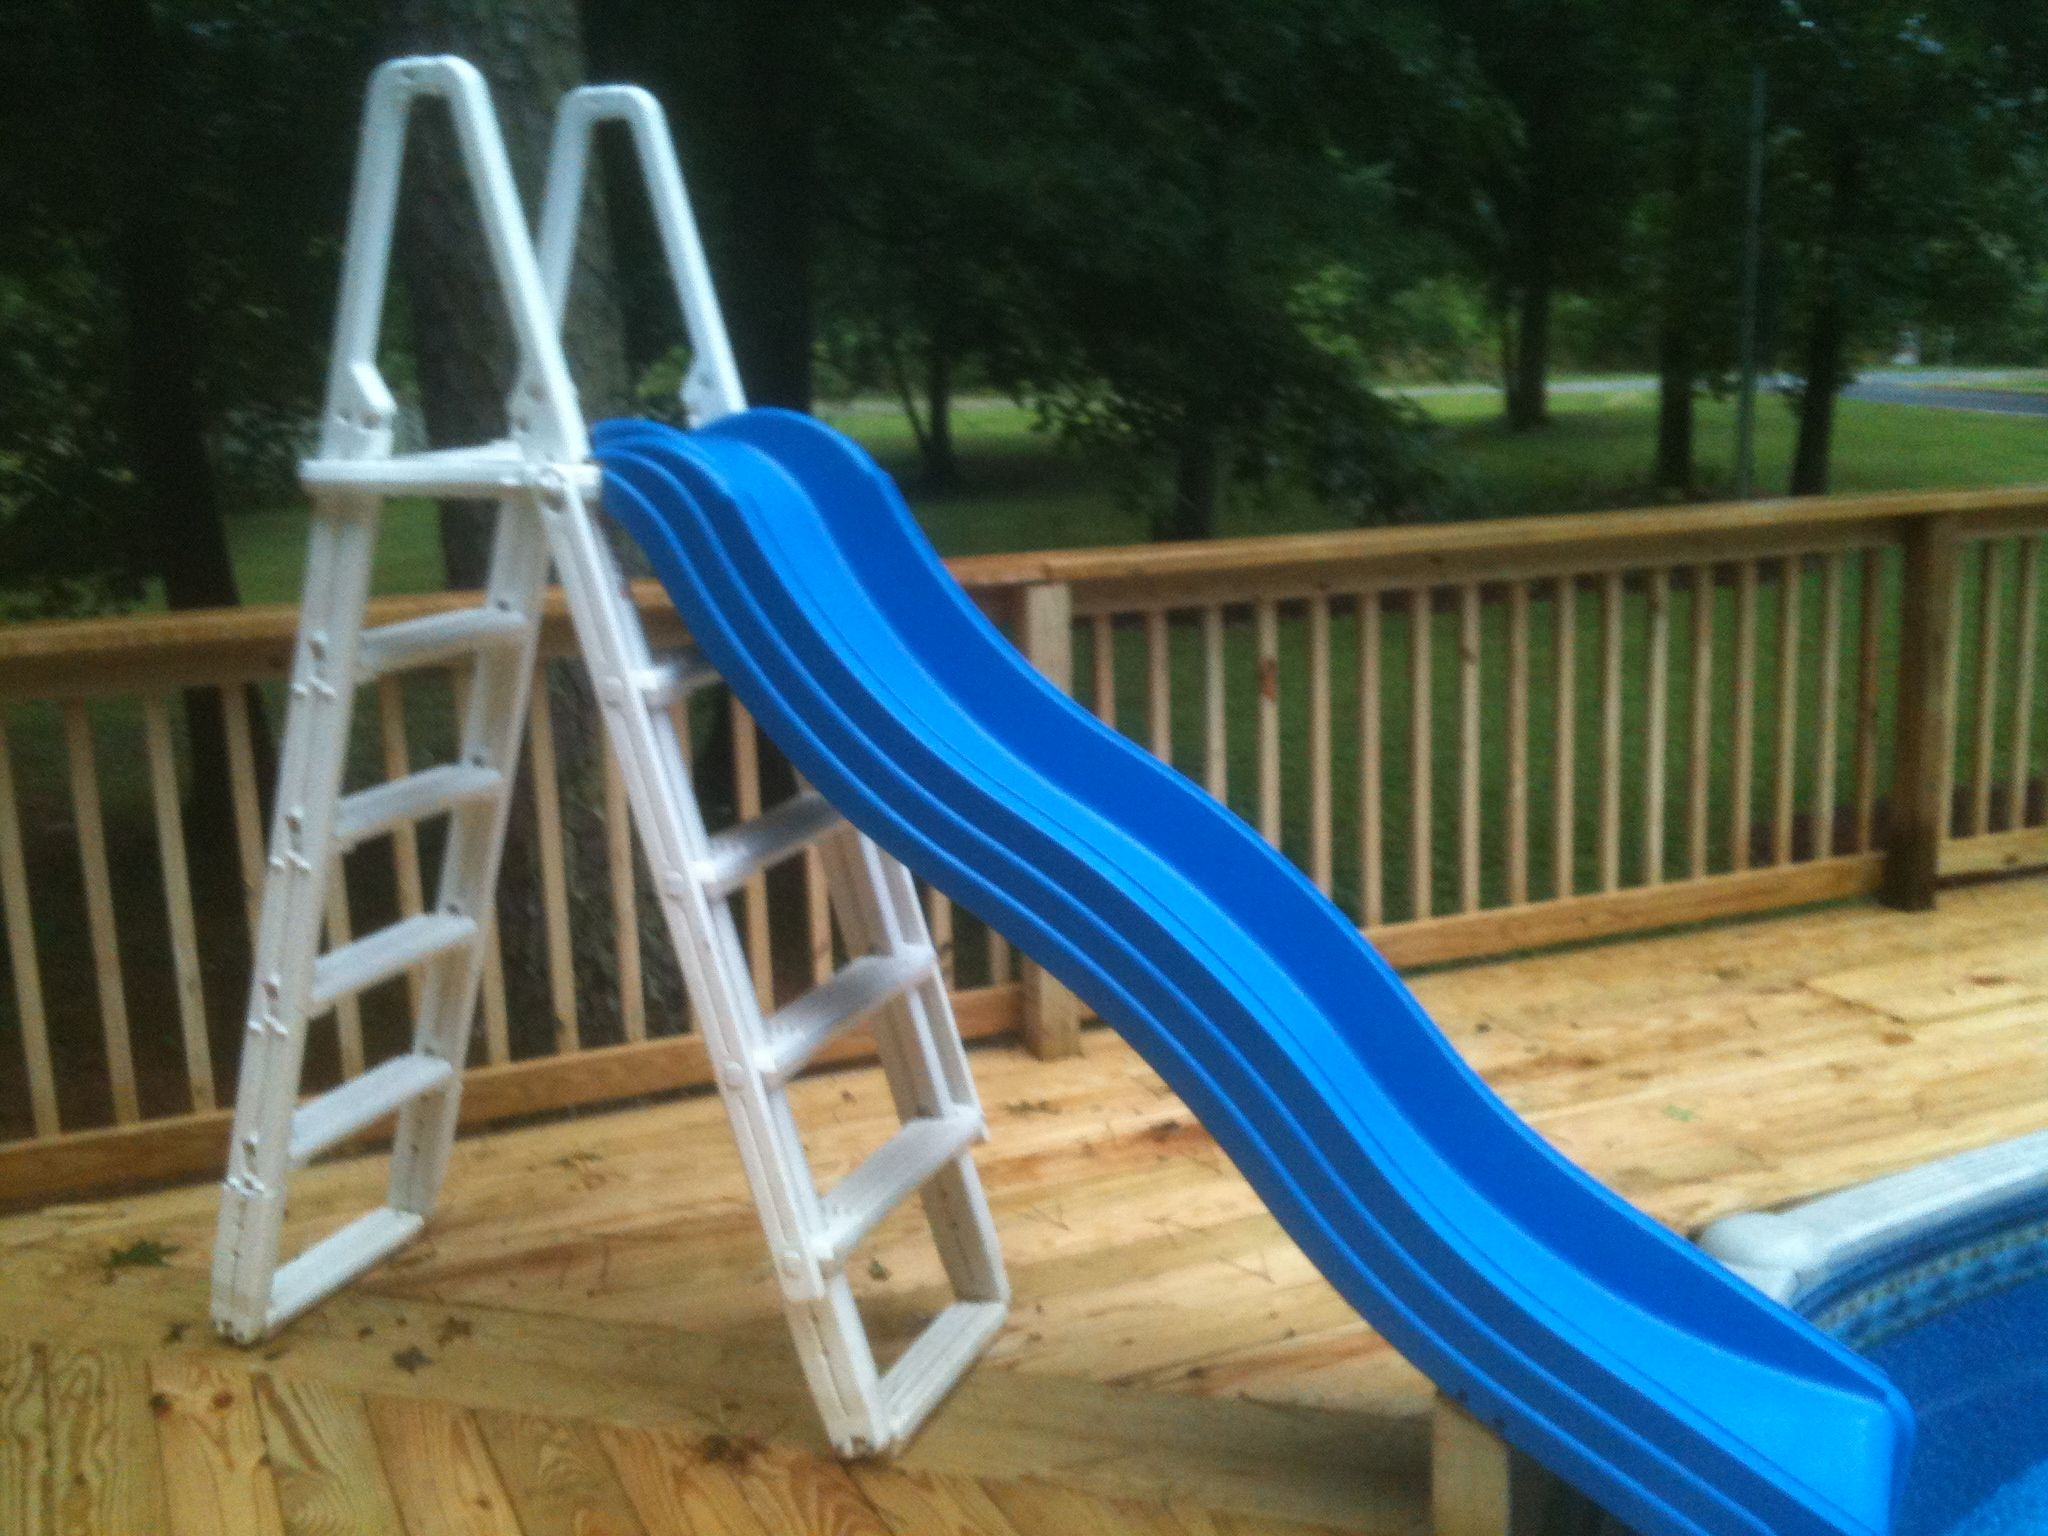 I Did This Over The Weekend My Wife Found The Slide At A Yard Sale It Is A Playground Slide I